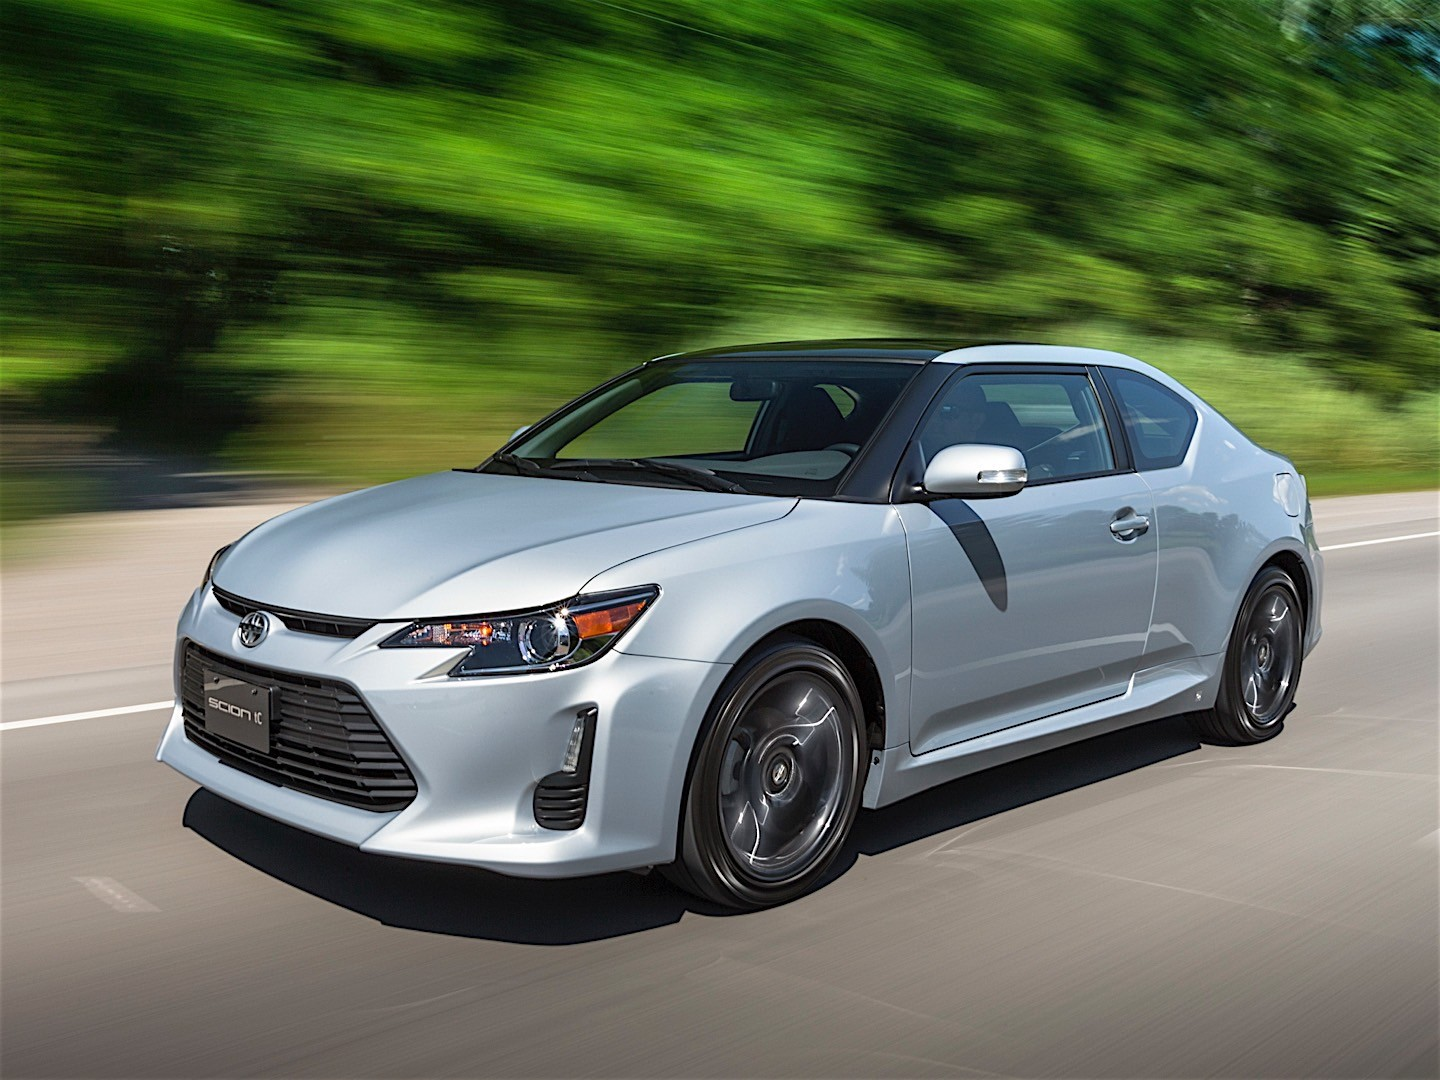 Scion Tc 2014 Tuning >> SCION tC specs - 2013, 2014, 2015, 2016 - autoevolution